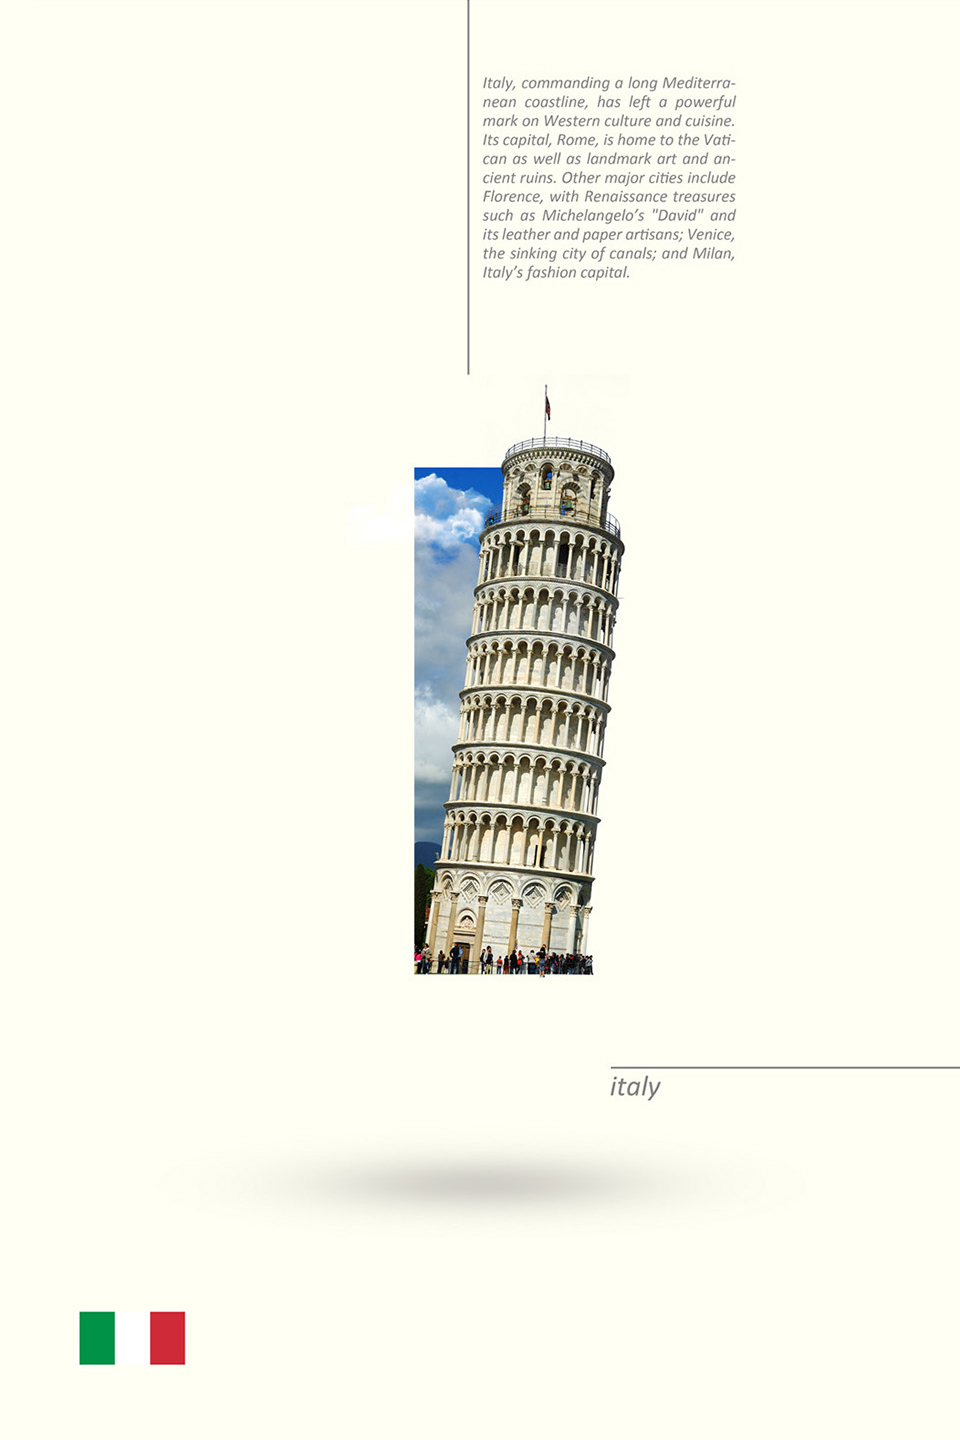 Beautiful Alphabet Series Of Countries And Their Iconic Landmarks - Italy